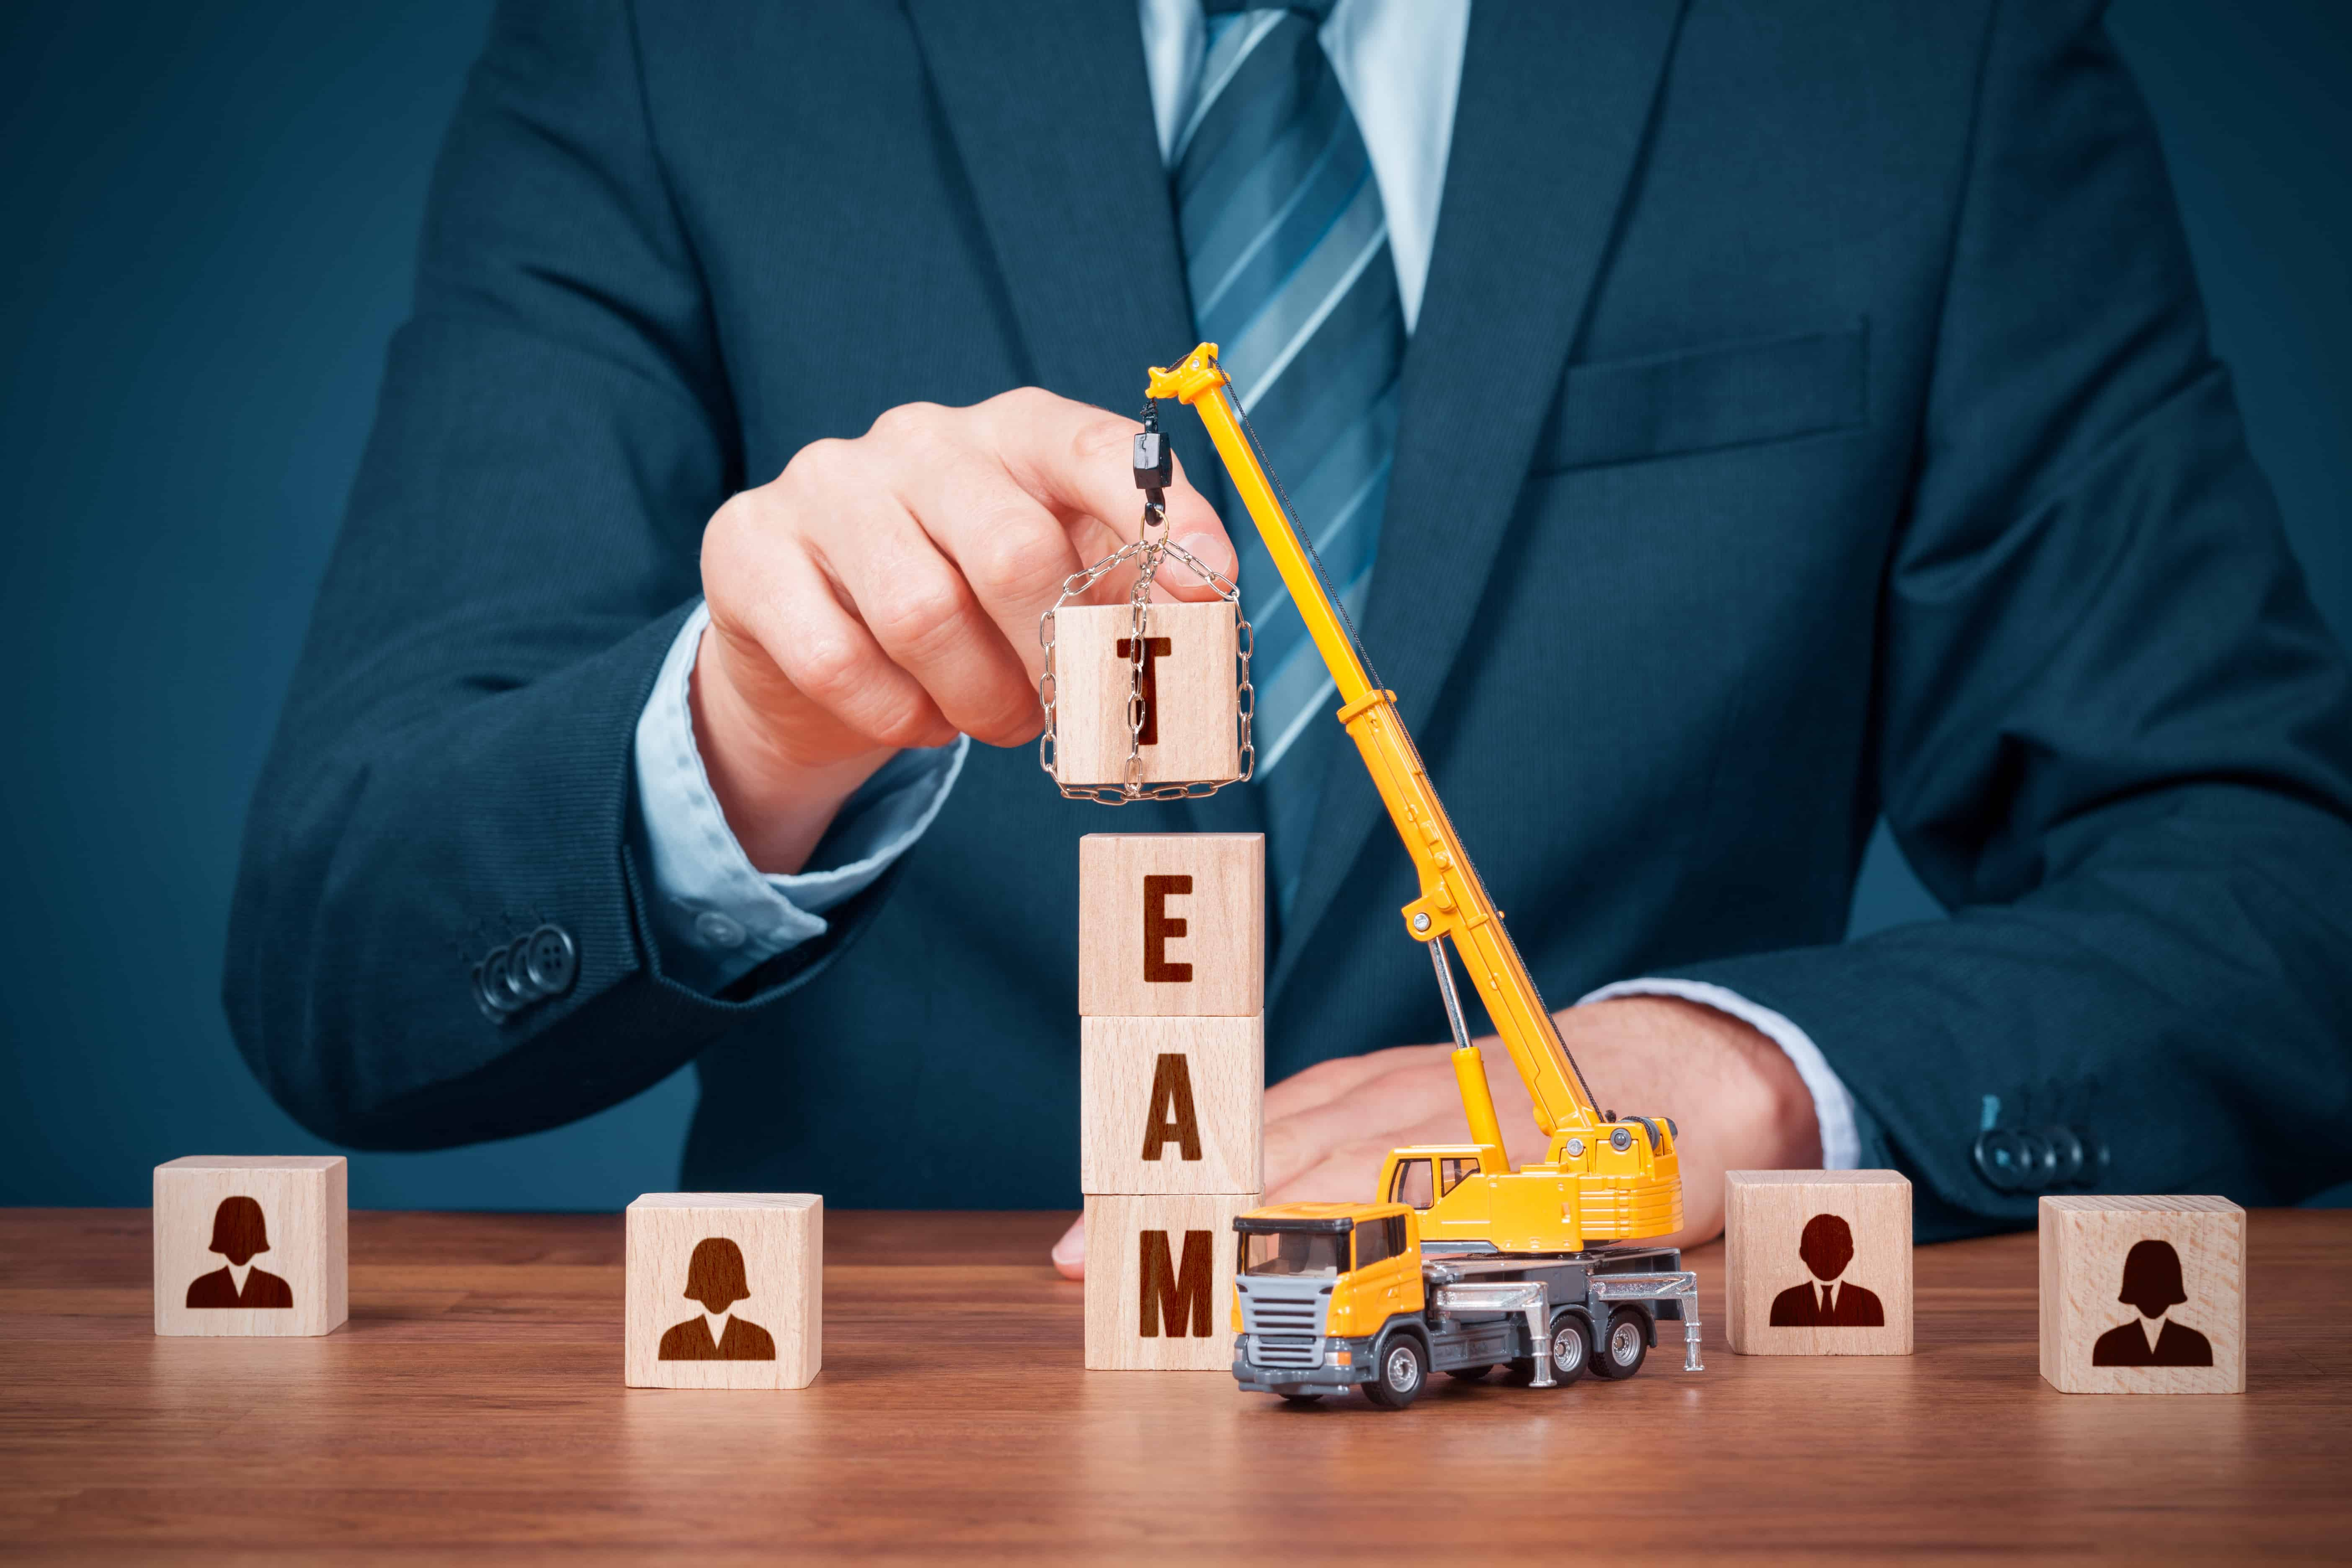 Human resources build team, hire and recruitment concepts. Recruiter complete team.